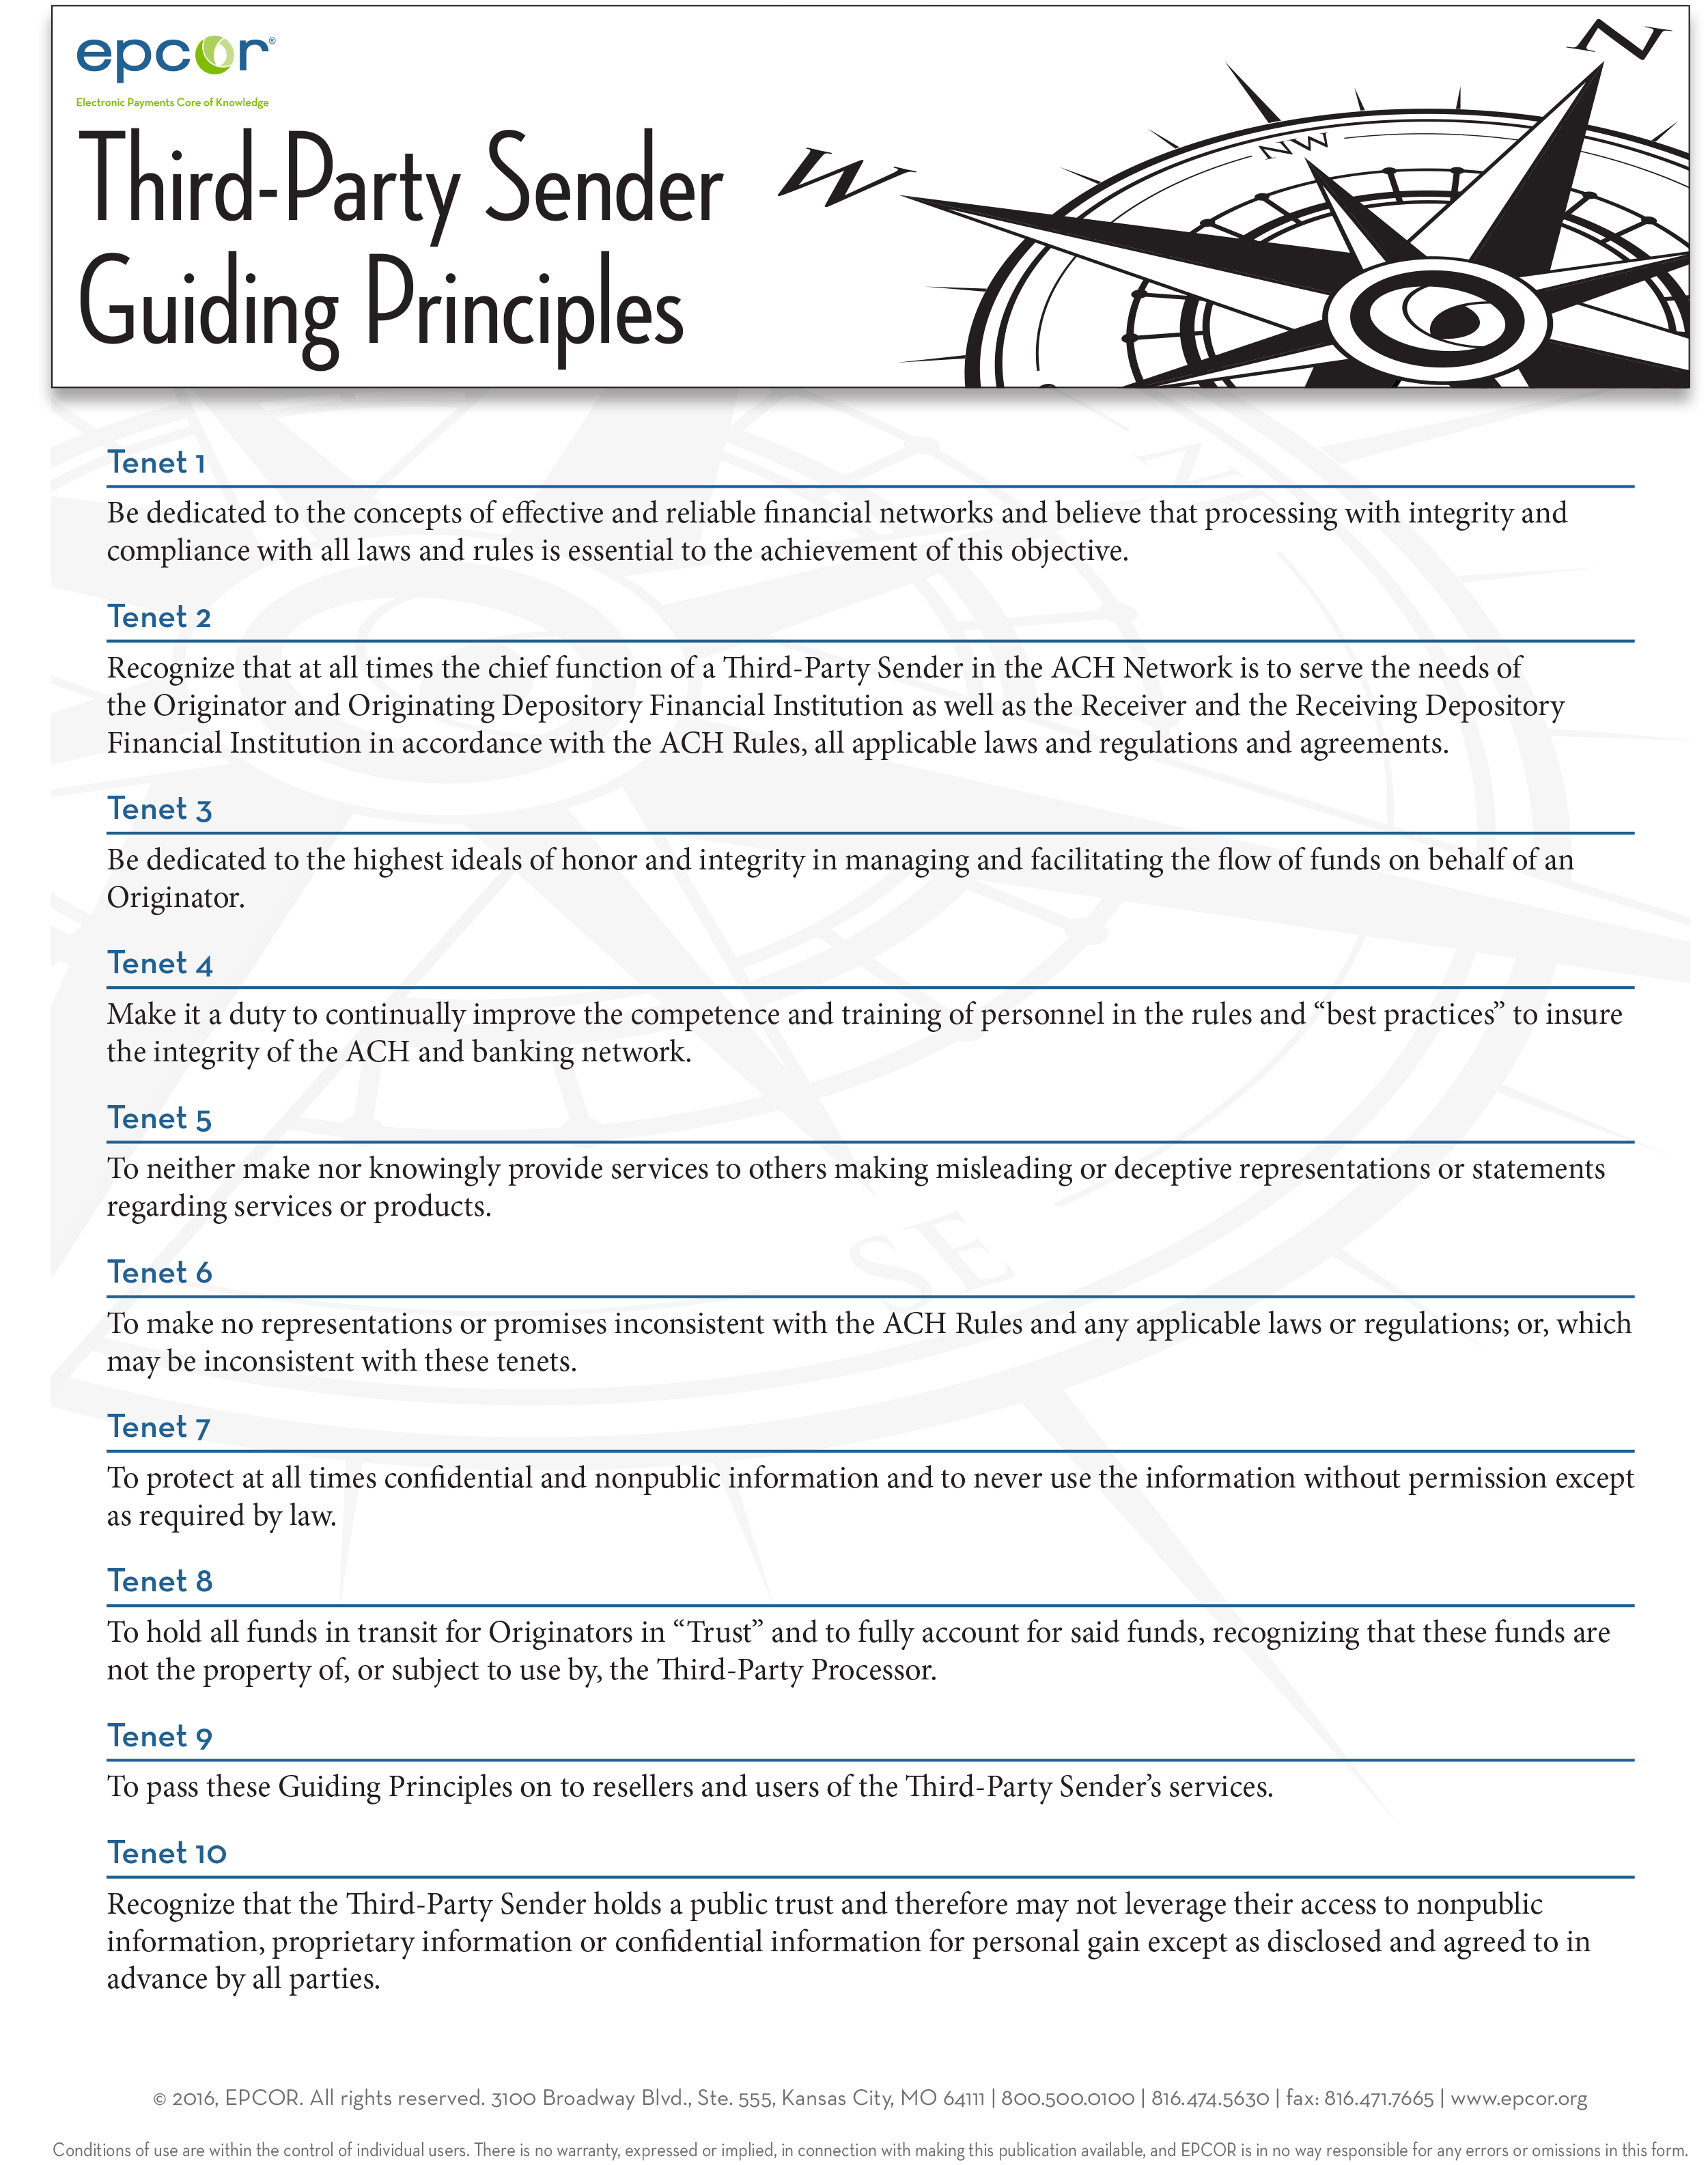 Third-Party-Sender-Guiding-Principles-Final